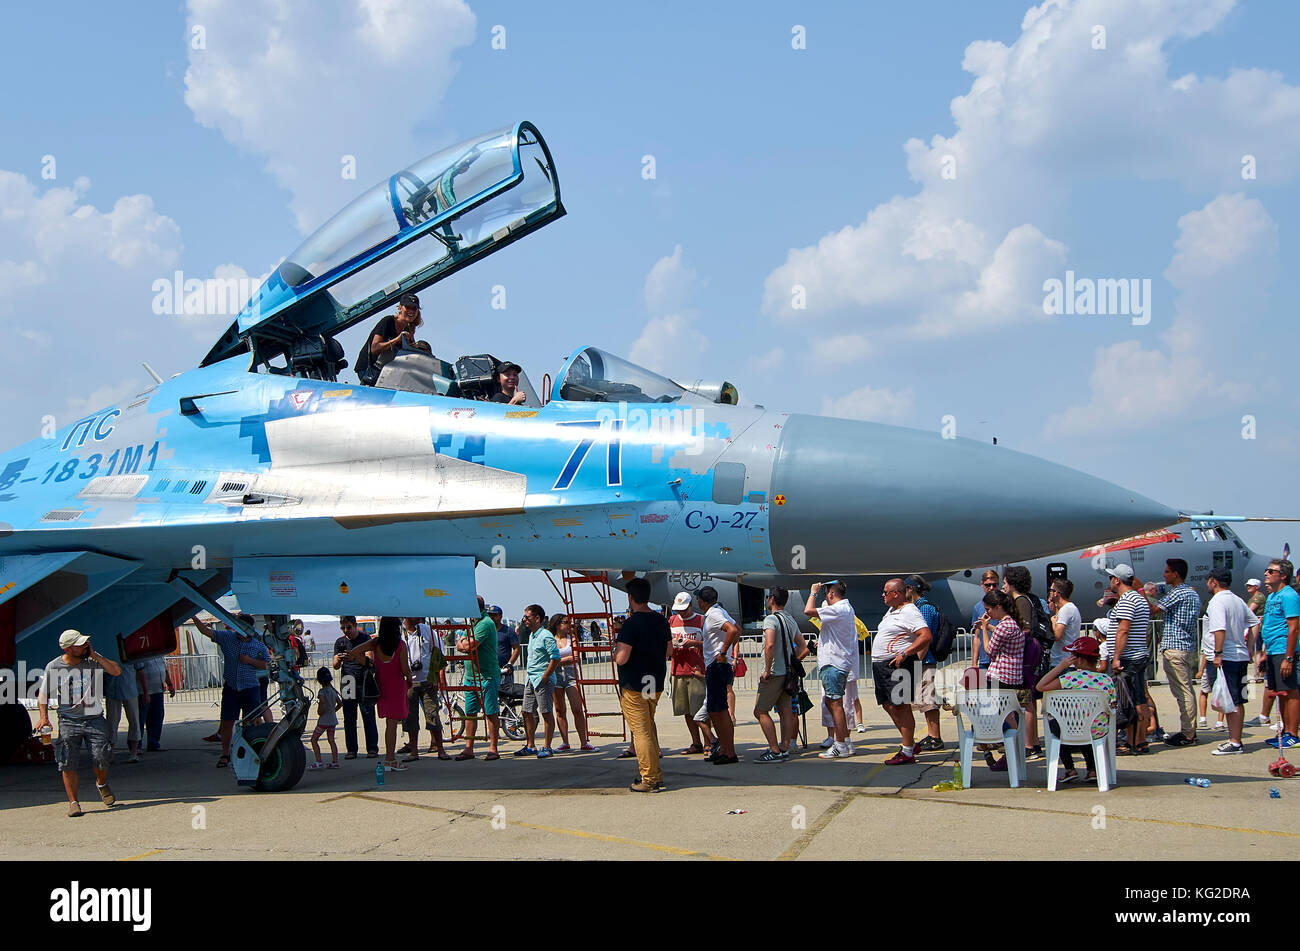 Sukhoi SU-27 Flanker, Ukrainian Air Force, on display at Bucharest International Air Show (BIAS) 2016, Bucharest, - Stock Image